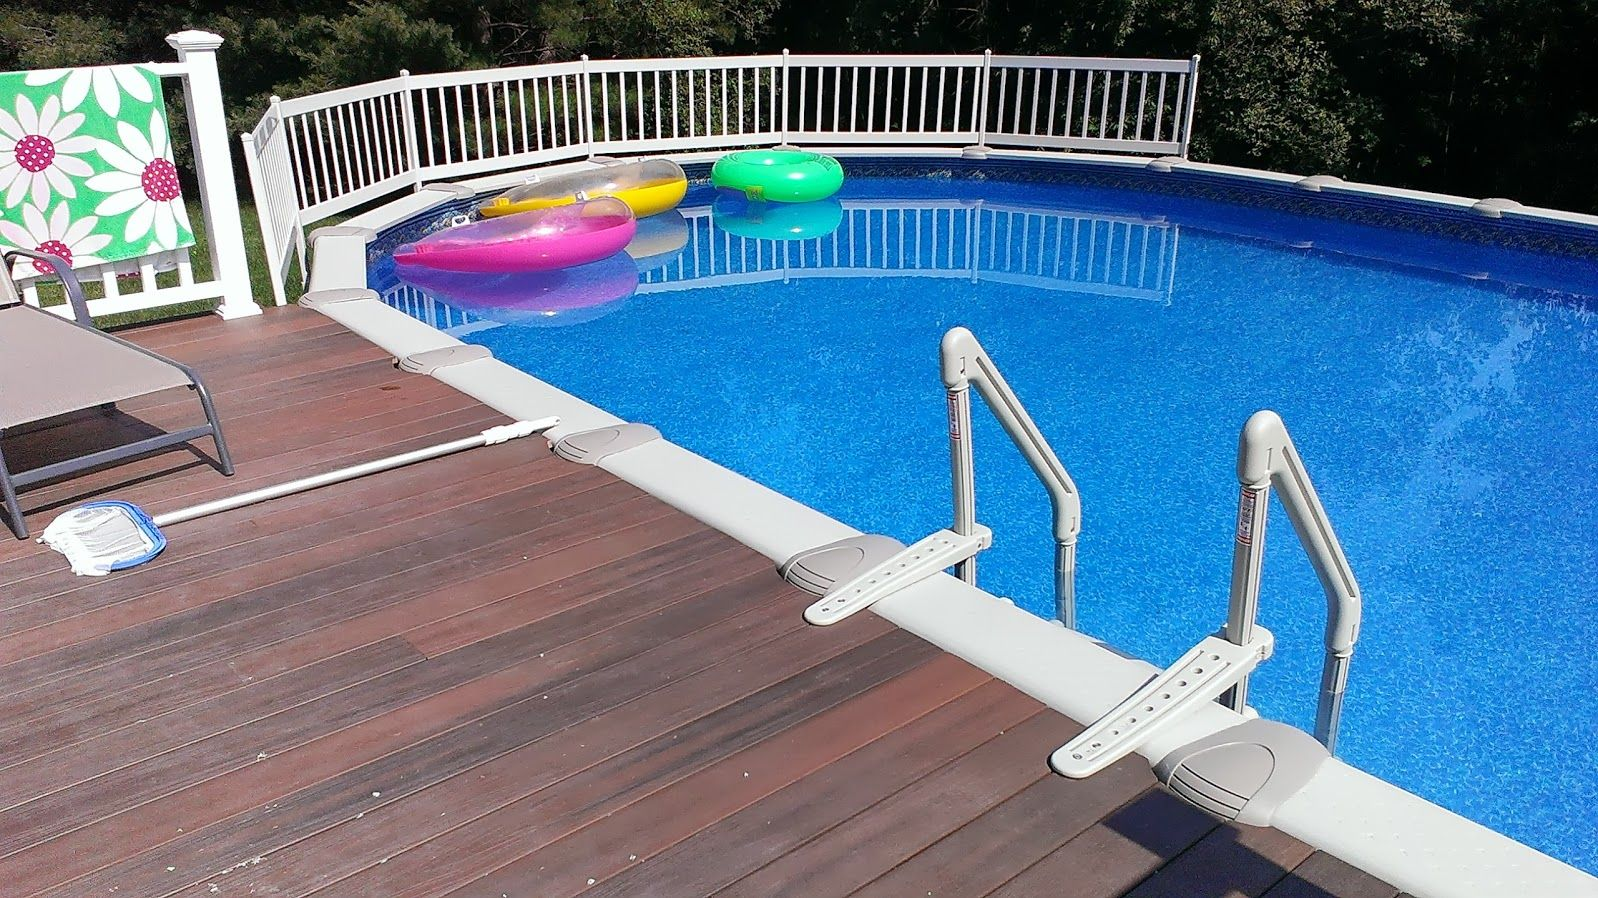 18ft X 33ft Sharkline Oceanic With Brand New Wooden Deck In Easton Ma Http Www Abovegroun Above Ground Pool Decks Round Above Ground Pool Above Ground Pool